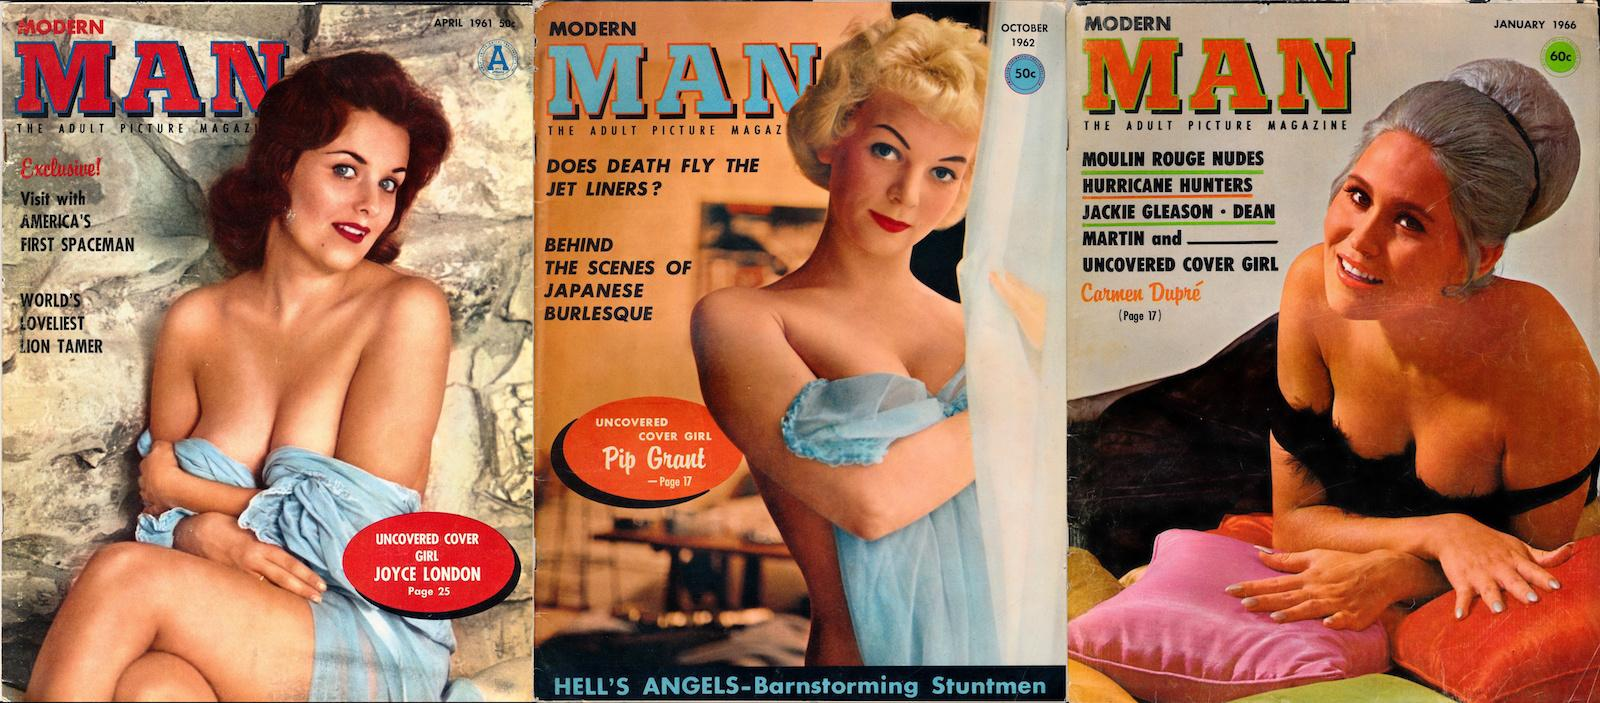 Agree with Vintage adult magazines your